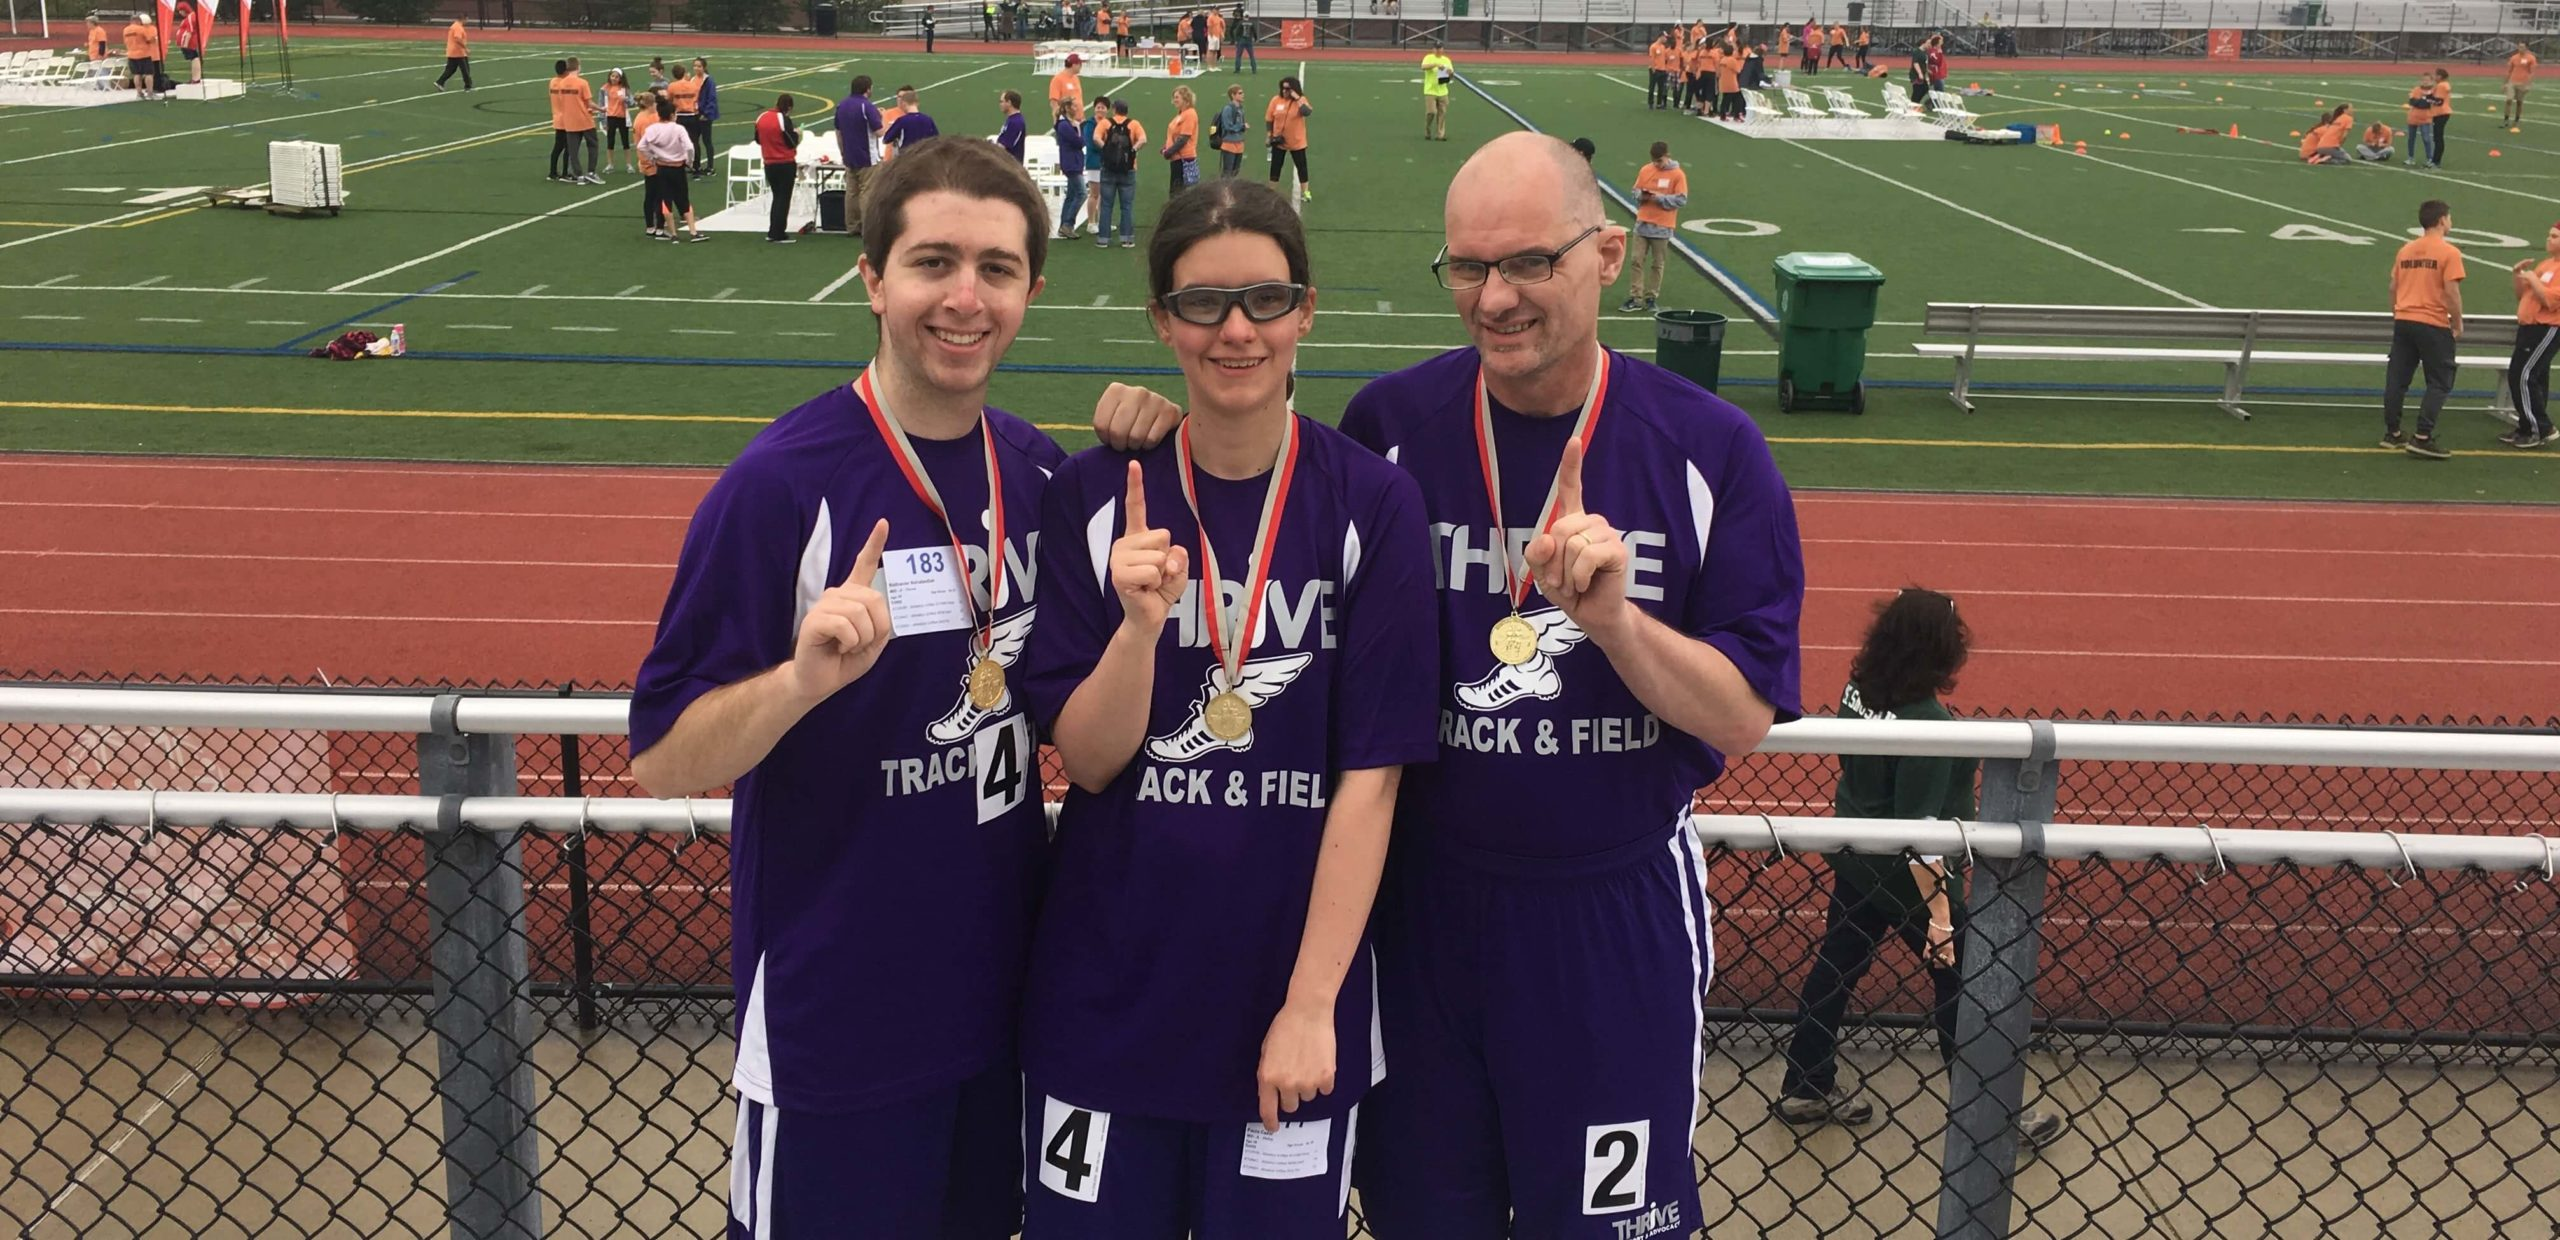 3 Special Olympics athletes pose with their medals